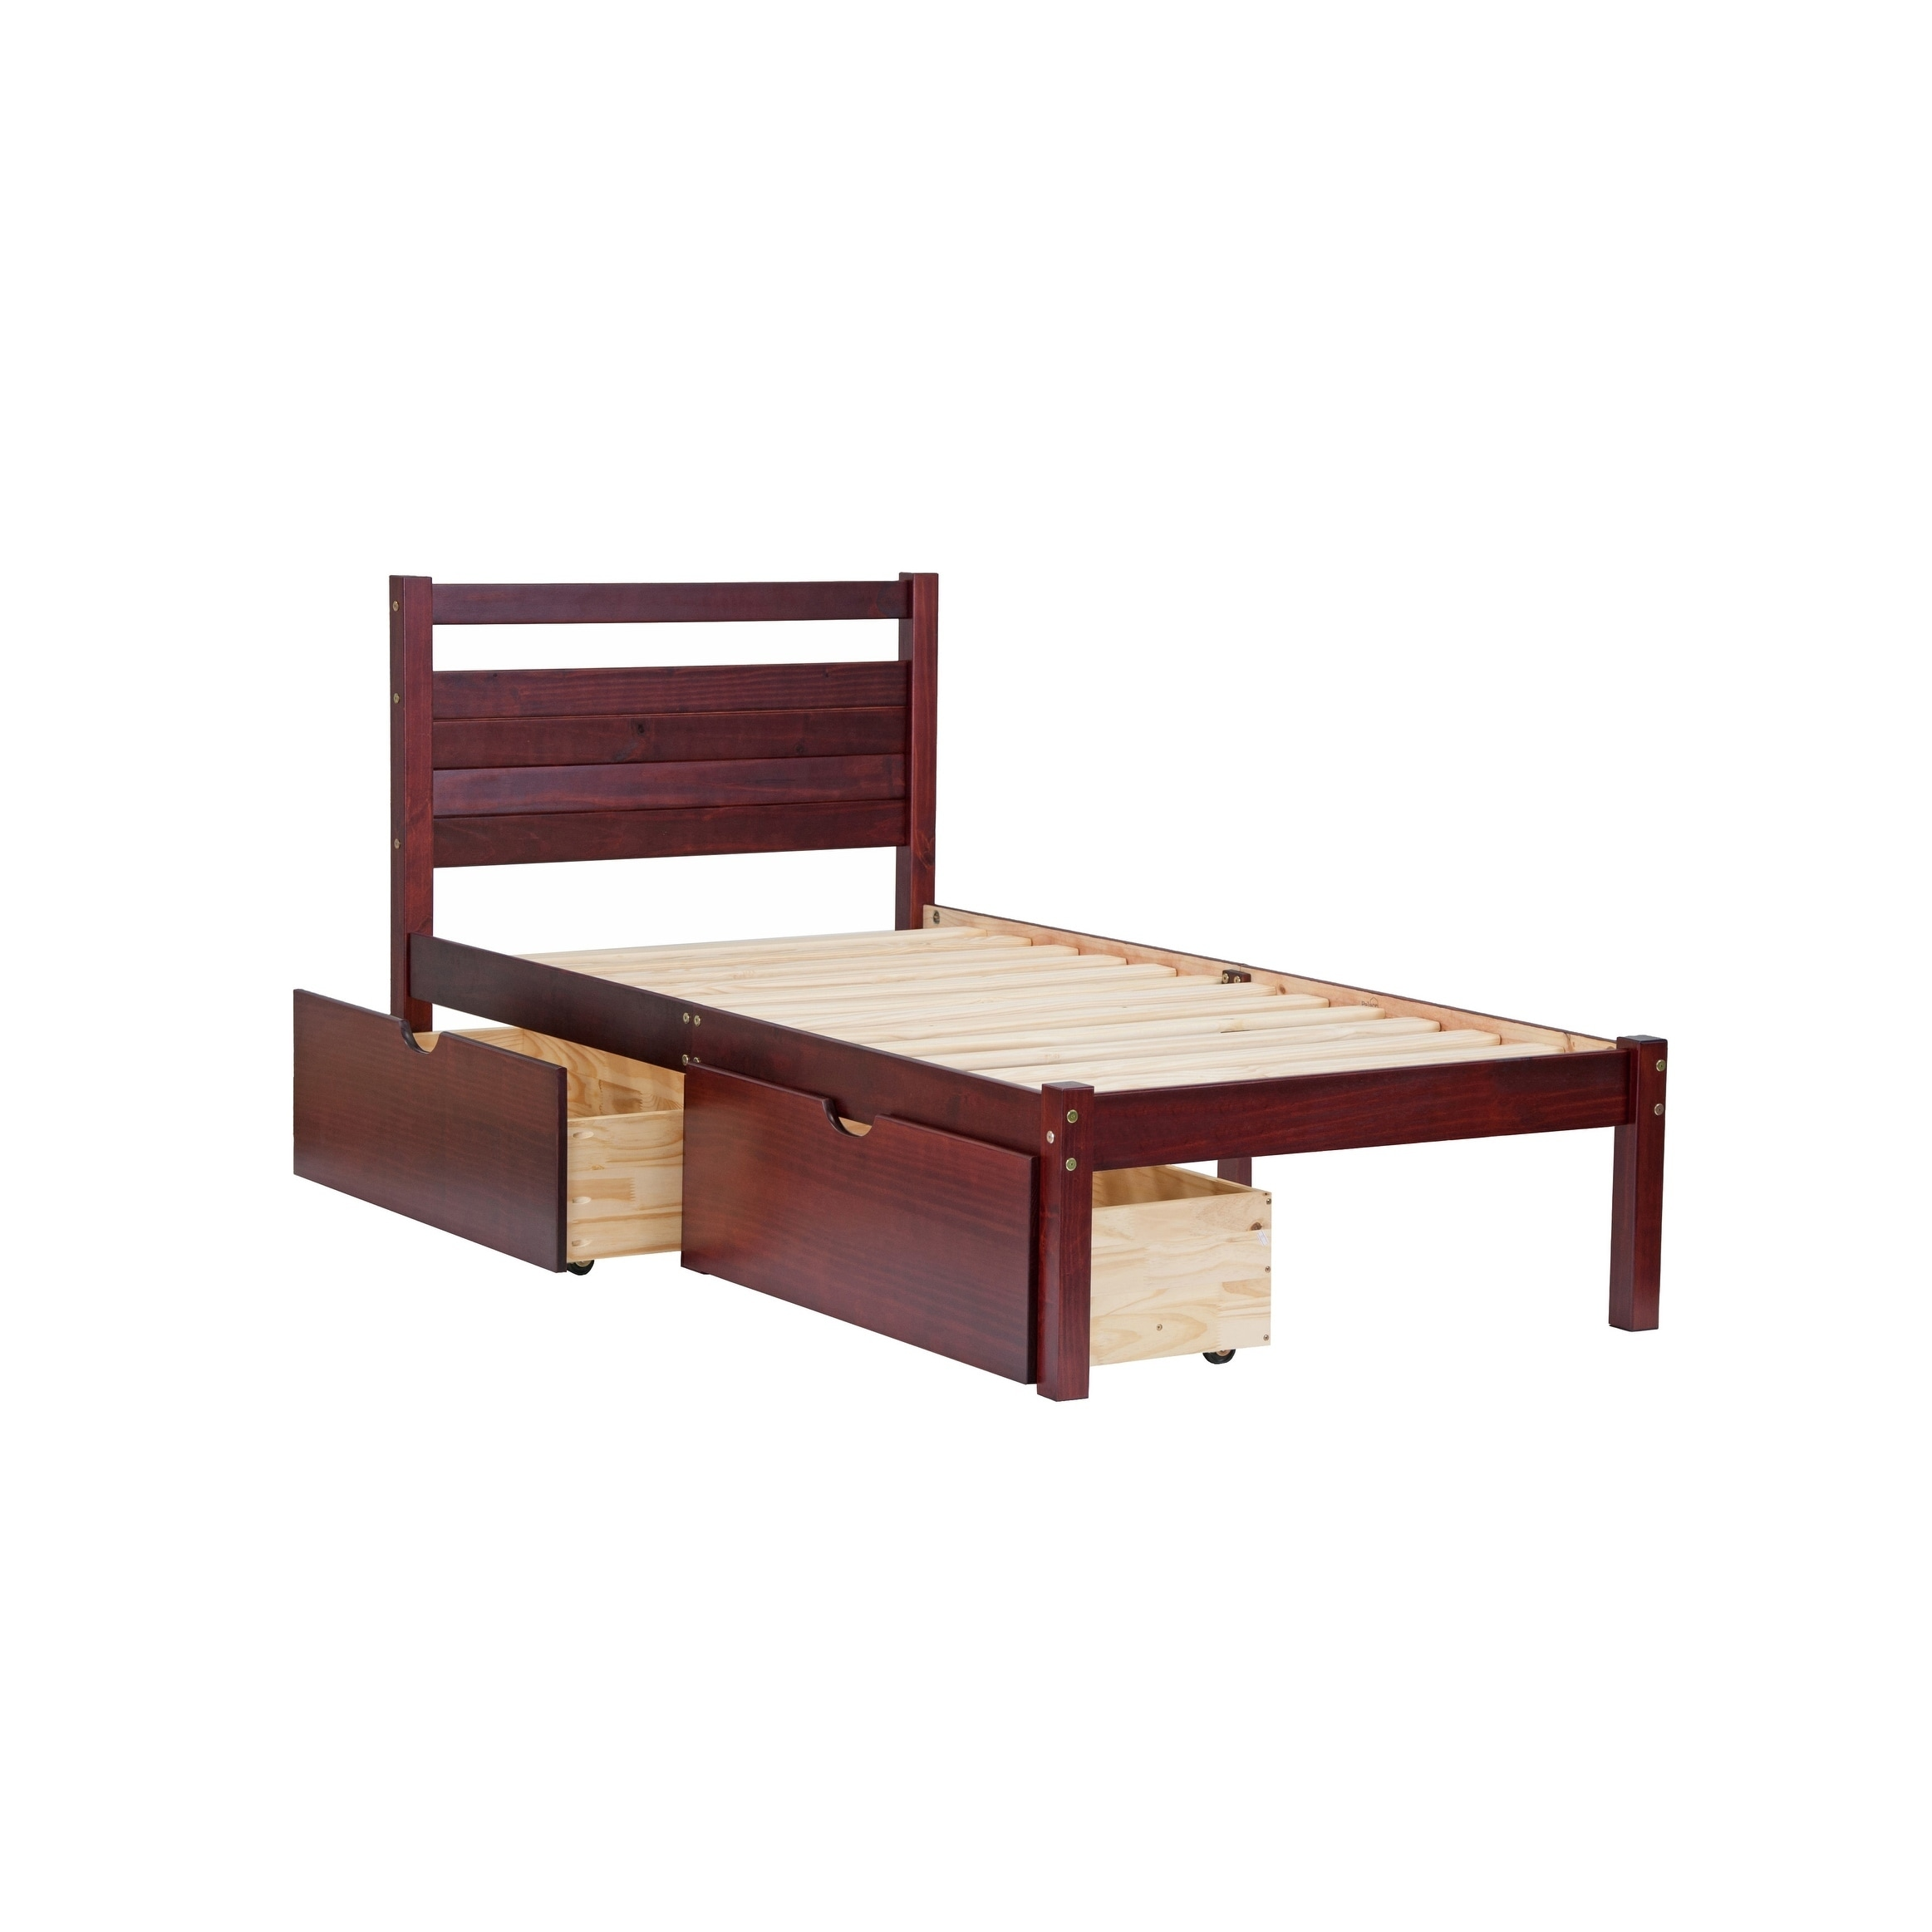 Shop Bronx Solid Pine Wood Twin Platform Bed By Palace Imports